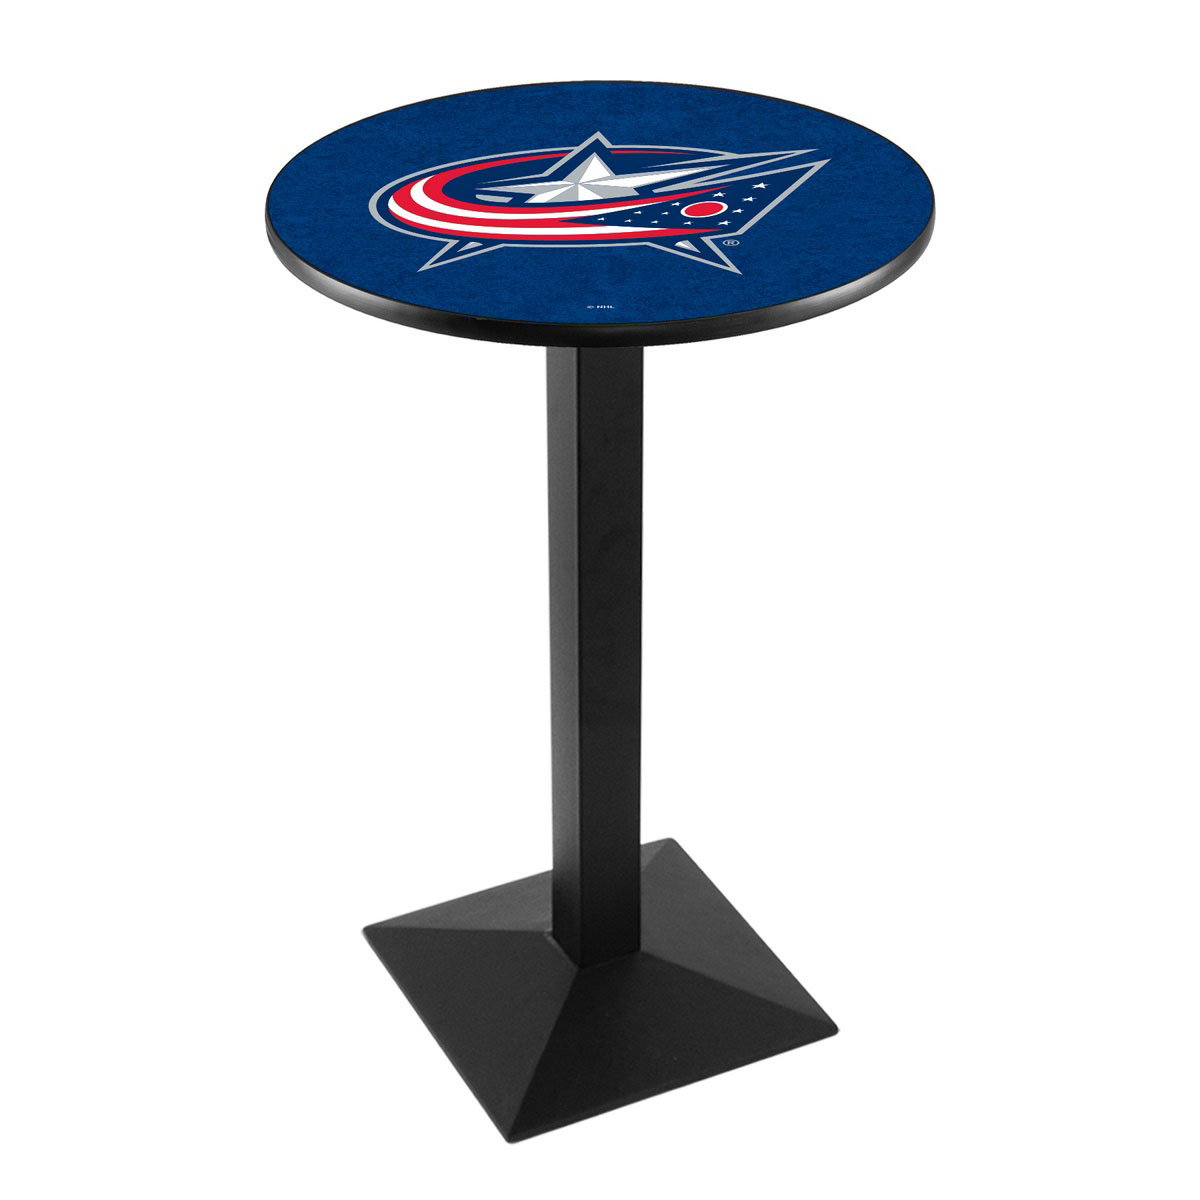 Buy Columbus-Jackets-Logo-Pub-Bar-Table-Square-Stand Product Image 1599